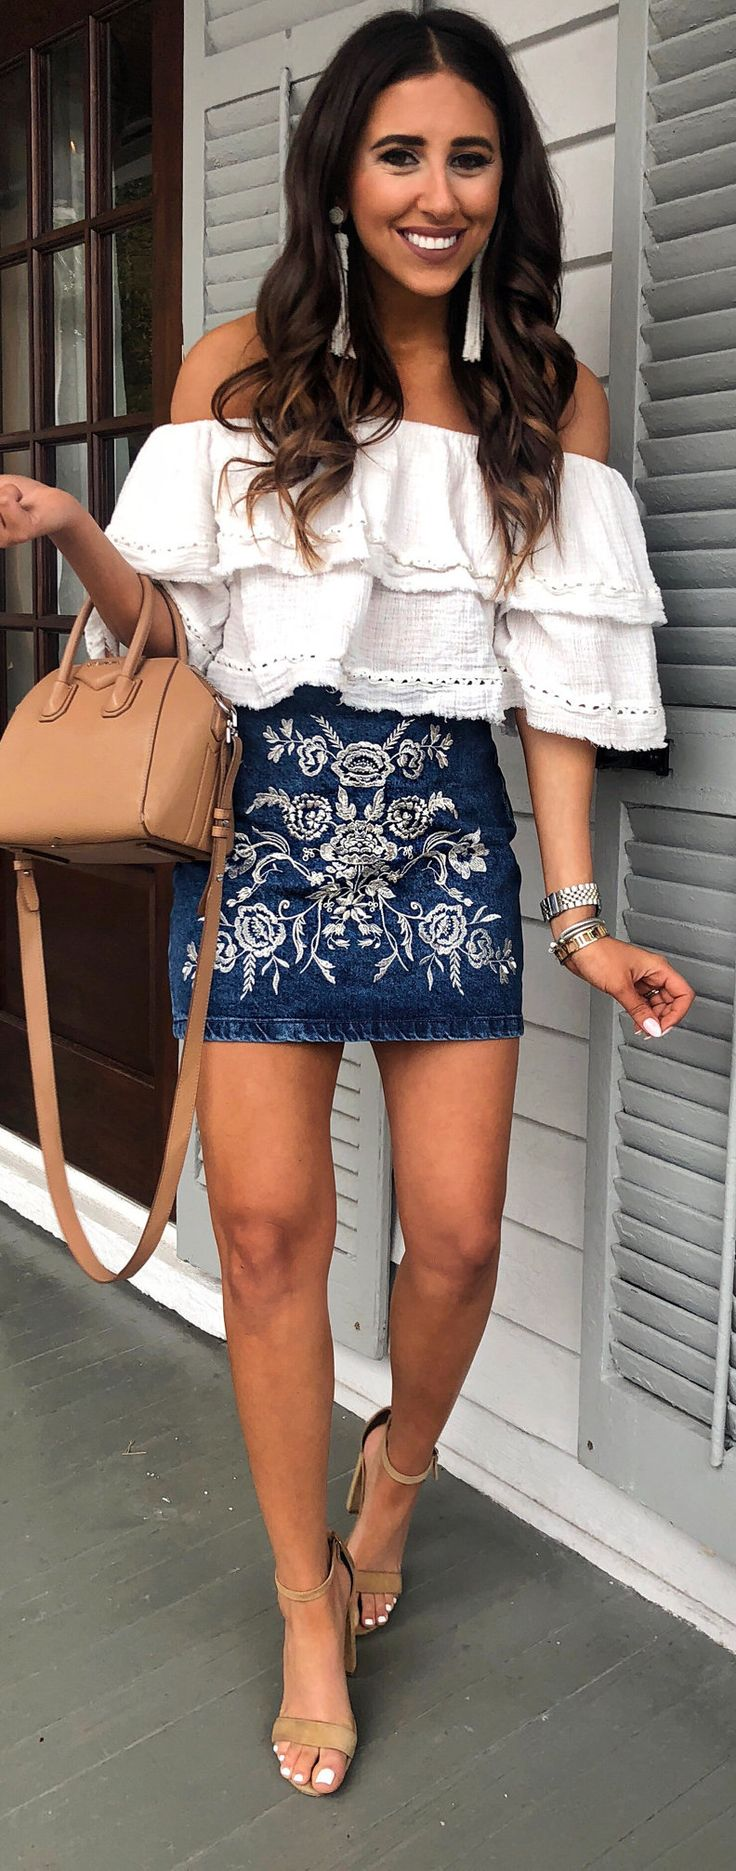 #spring #outfits woman wearing white off-shoulder shirt and blue denim skirt. Pic by @dressupbuttercup